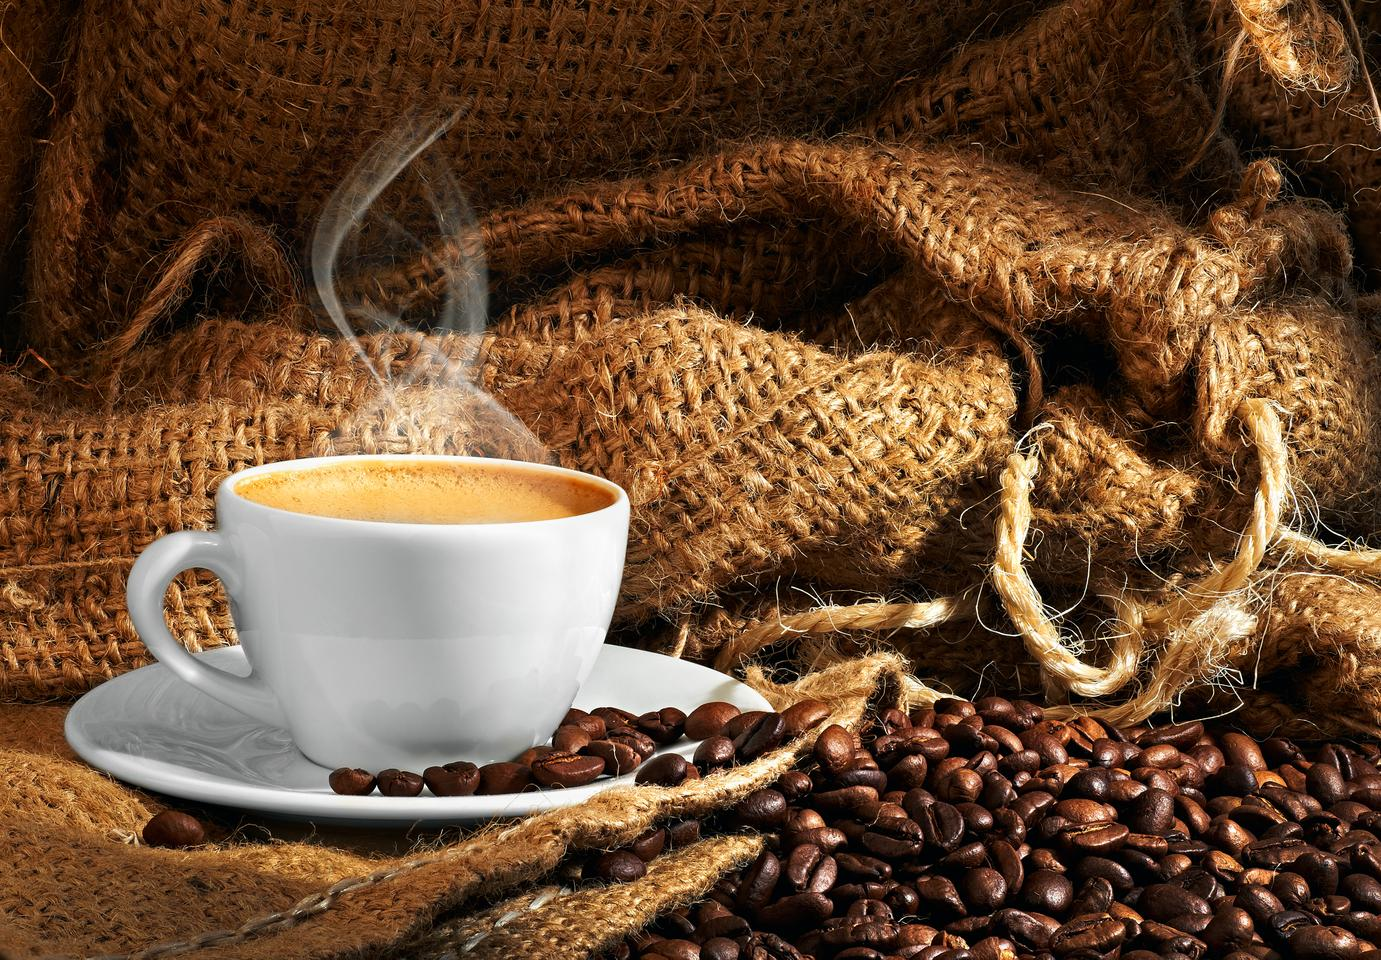 The longer a coffee is roasted, the higher its level of phenylindanes